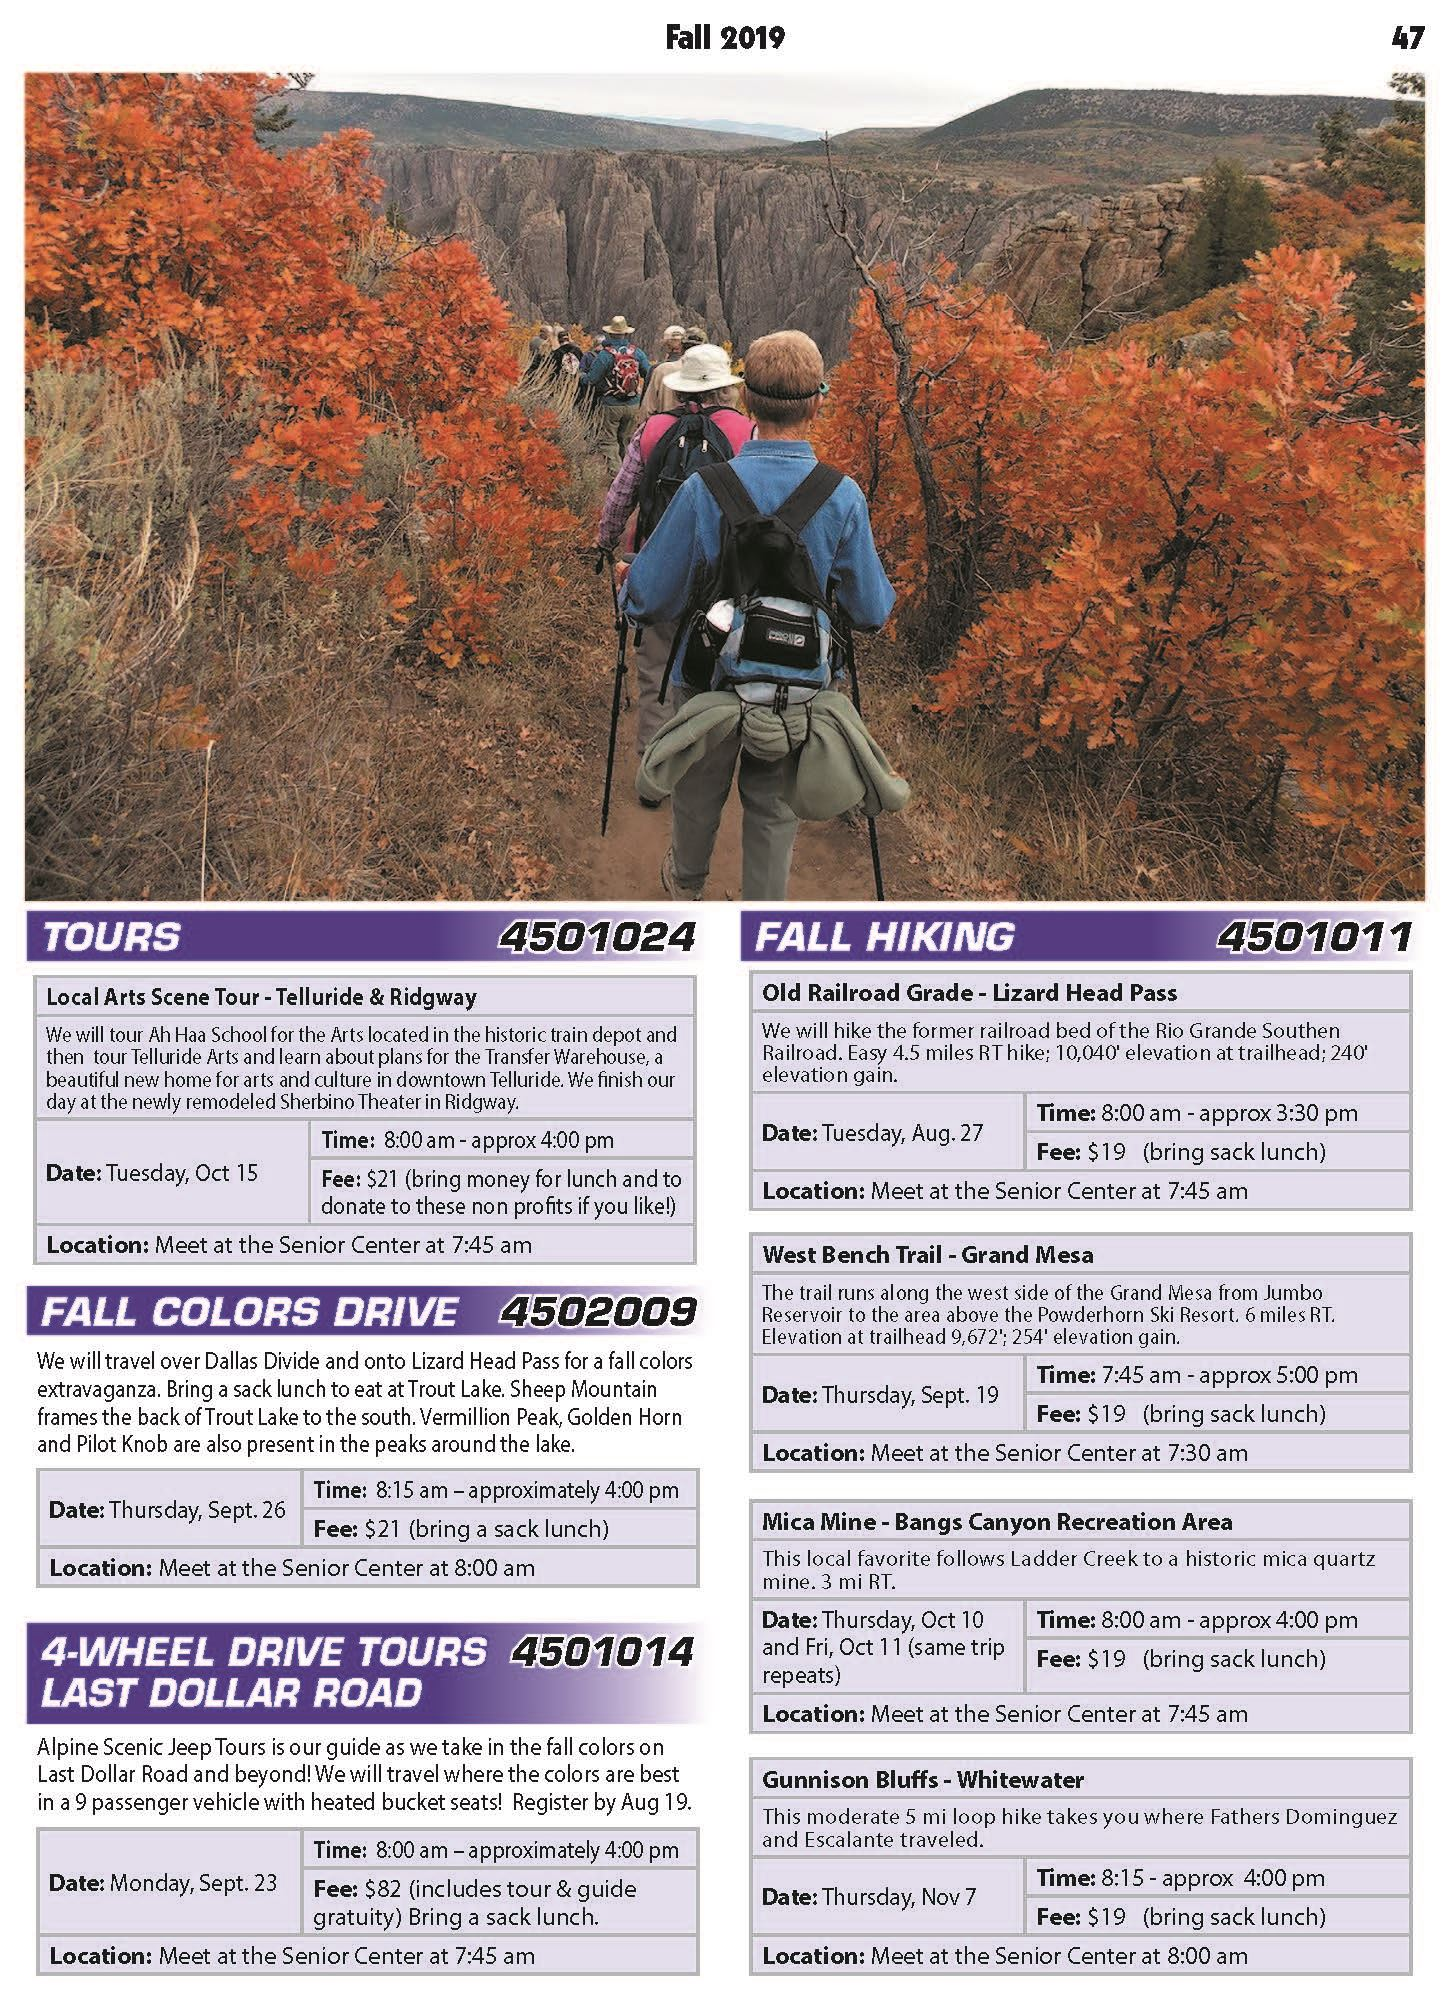 19-MRD-Fall-Guide final images_Page_47